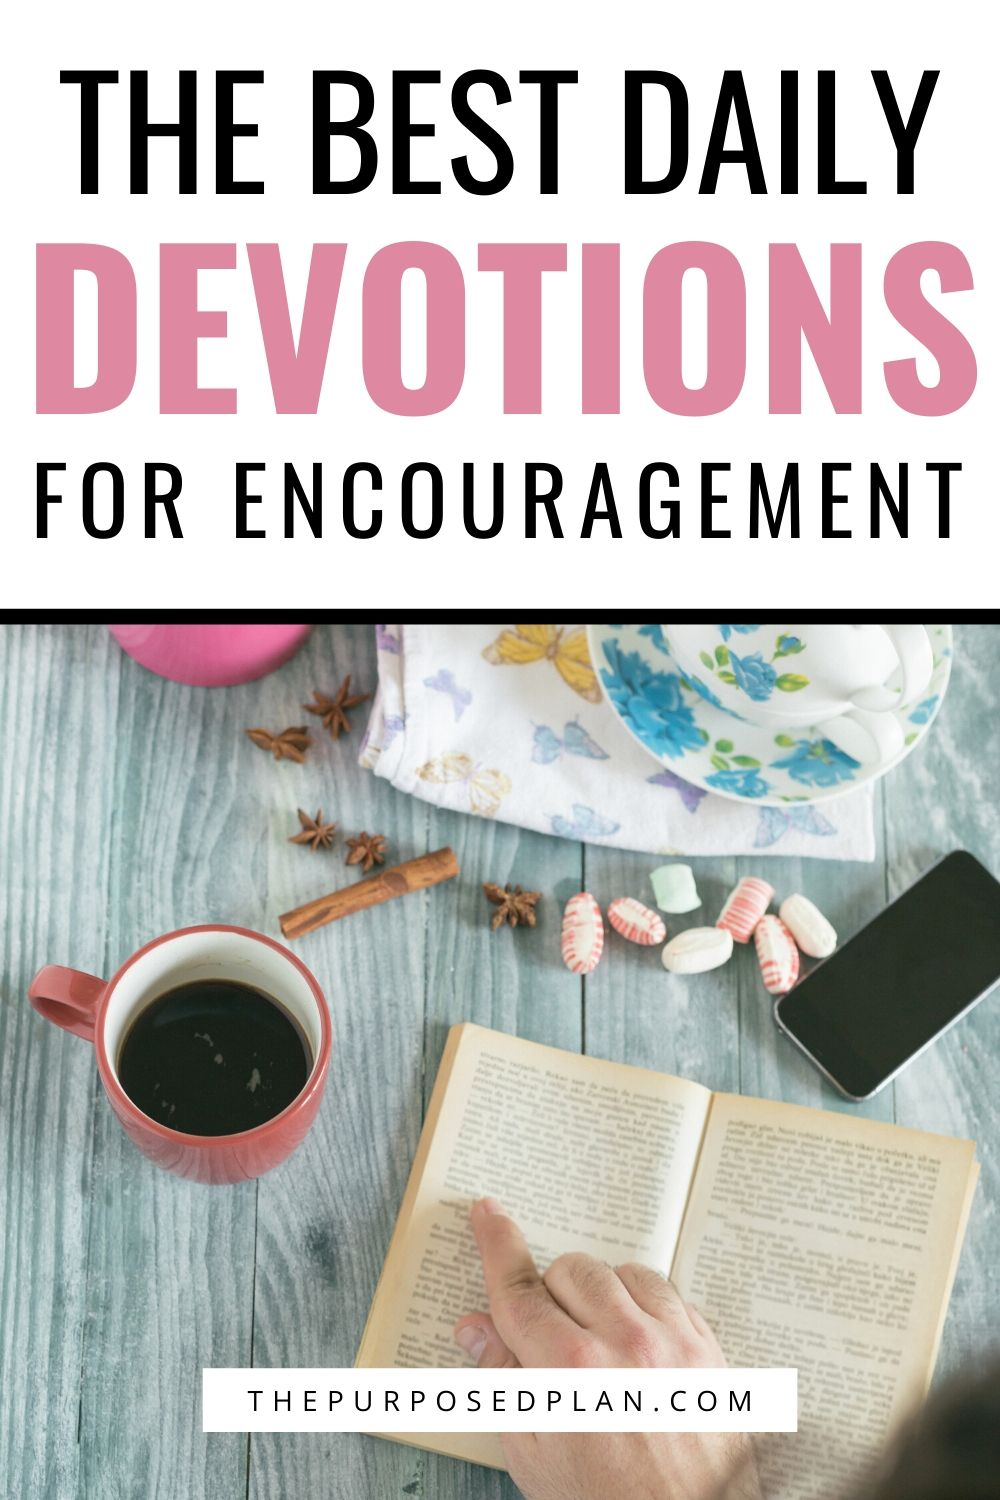 DAILY DEVOTIONALS FOR WOMEN